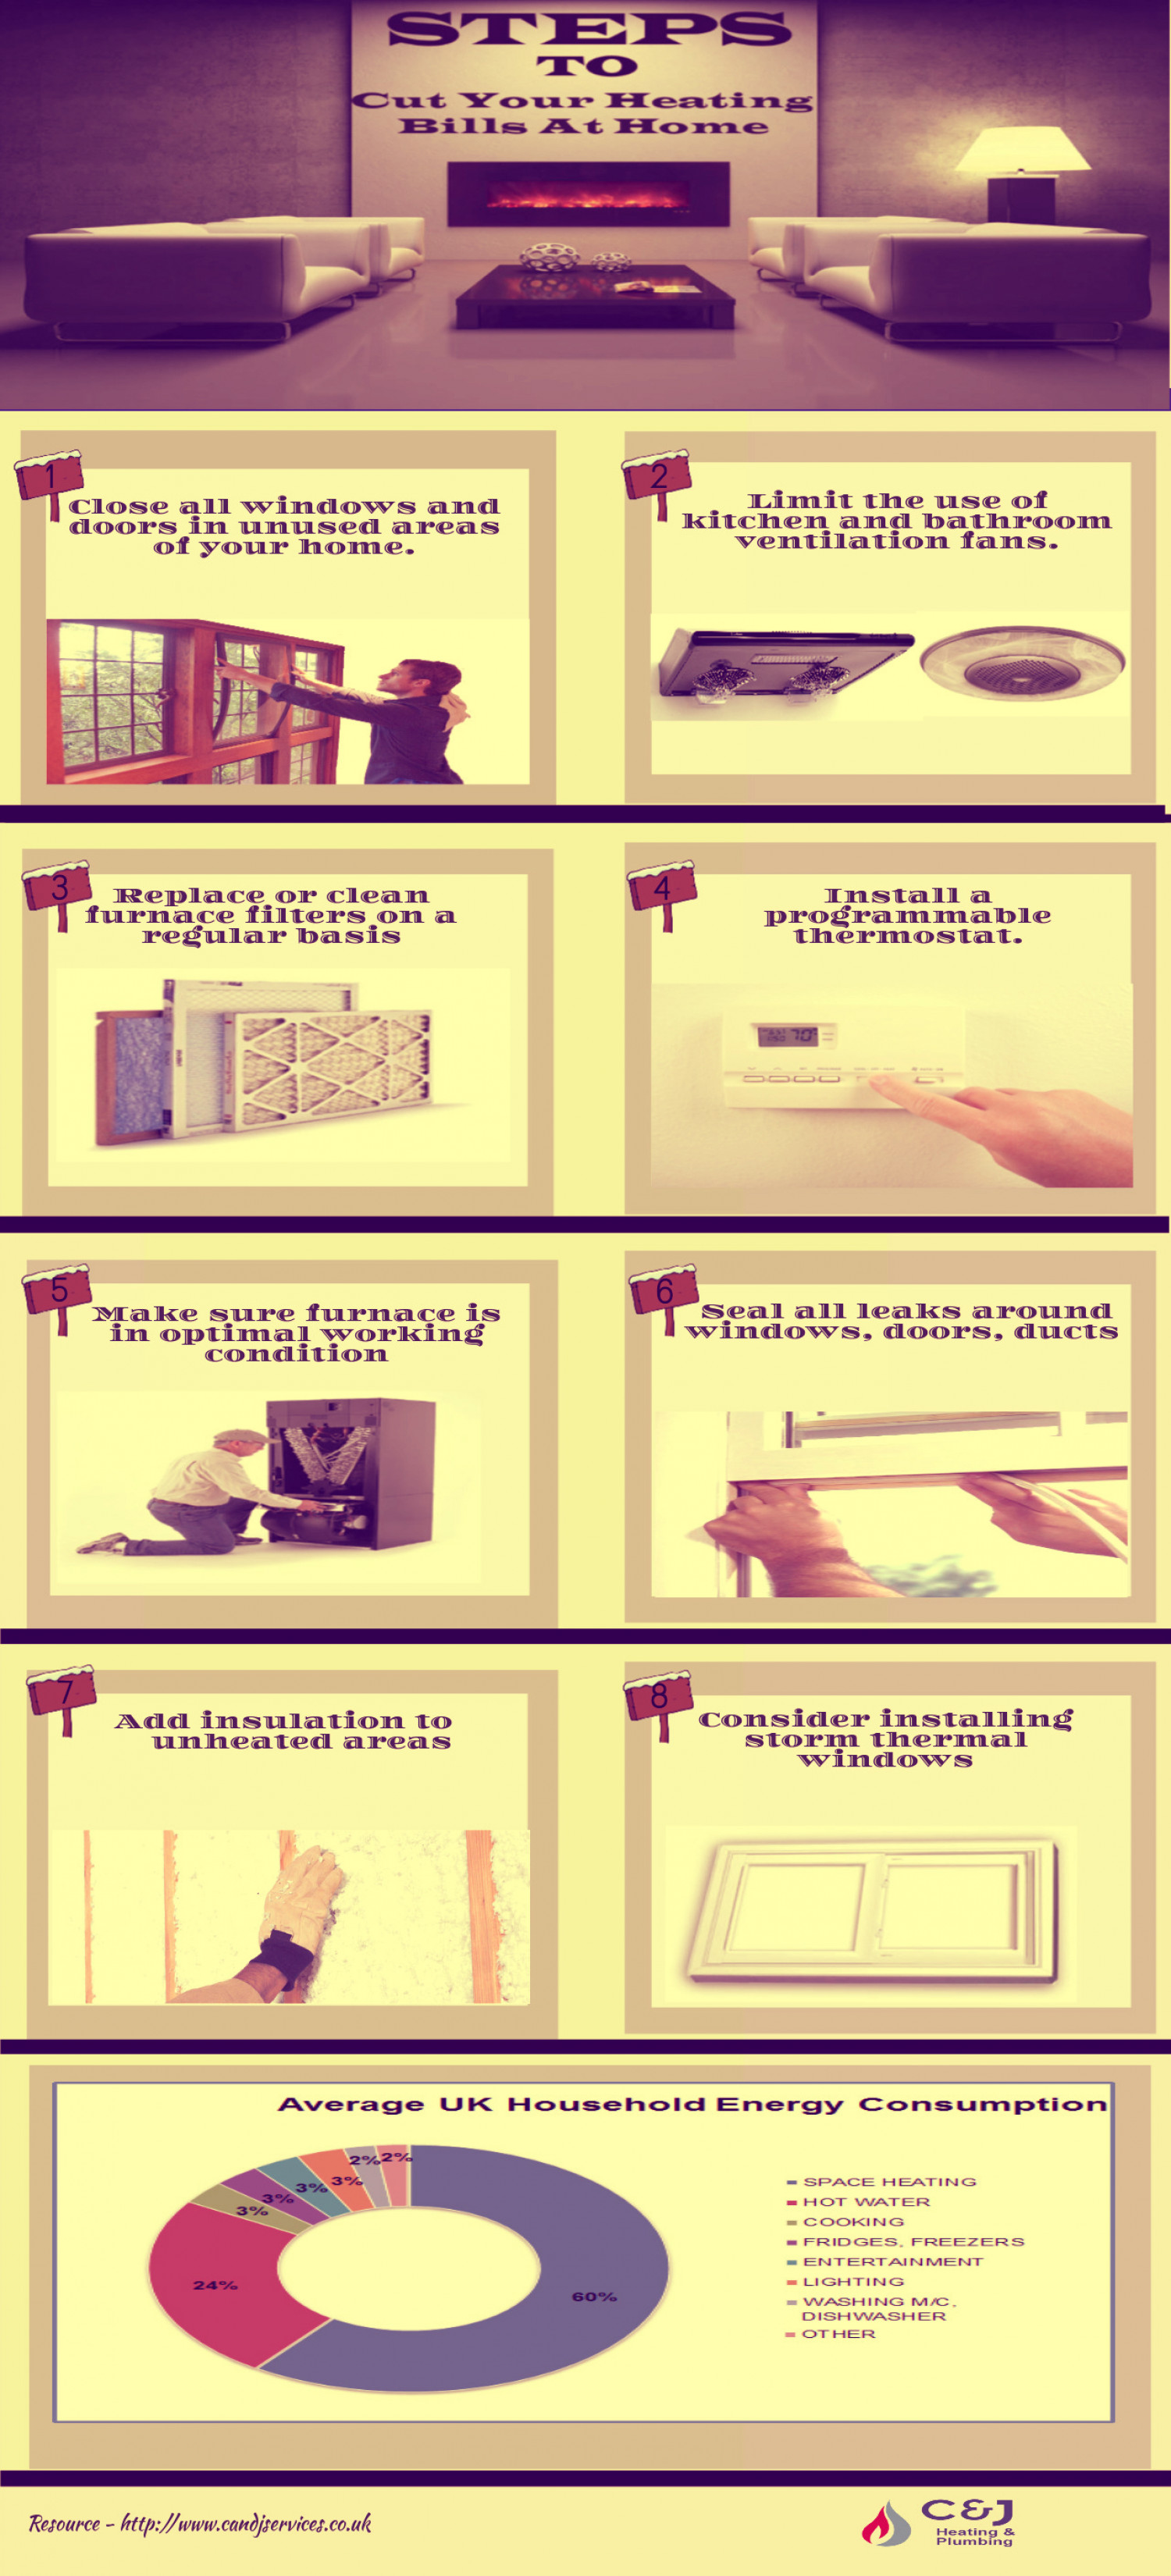 Steps to Cut Your Heating Bills at Home  Infographic